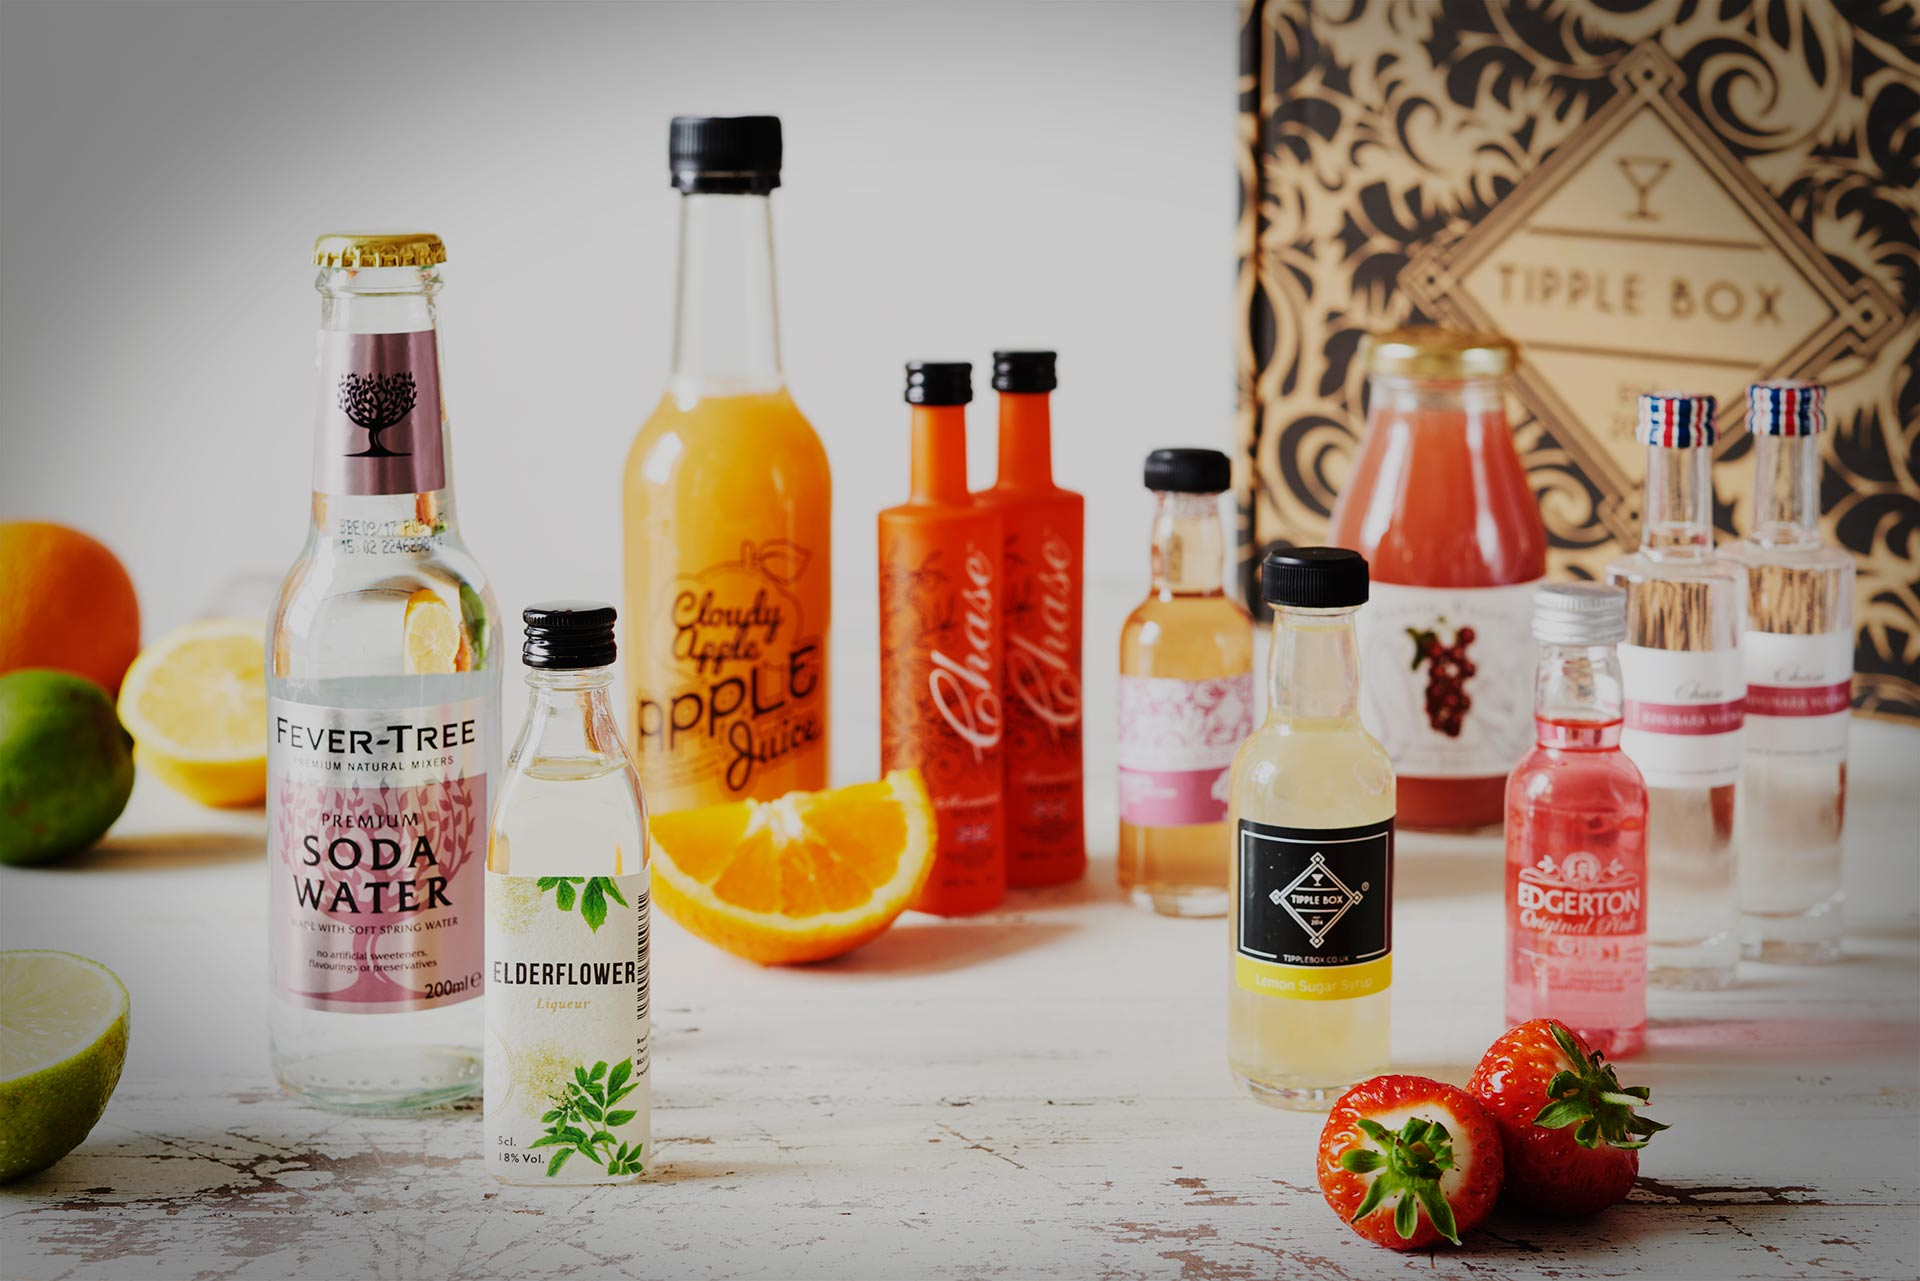 Tipple Box Launches Crowdcube Campaign